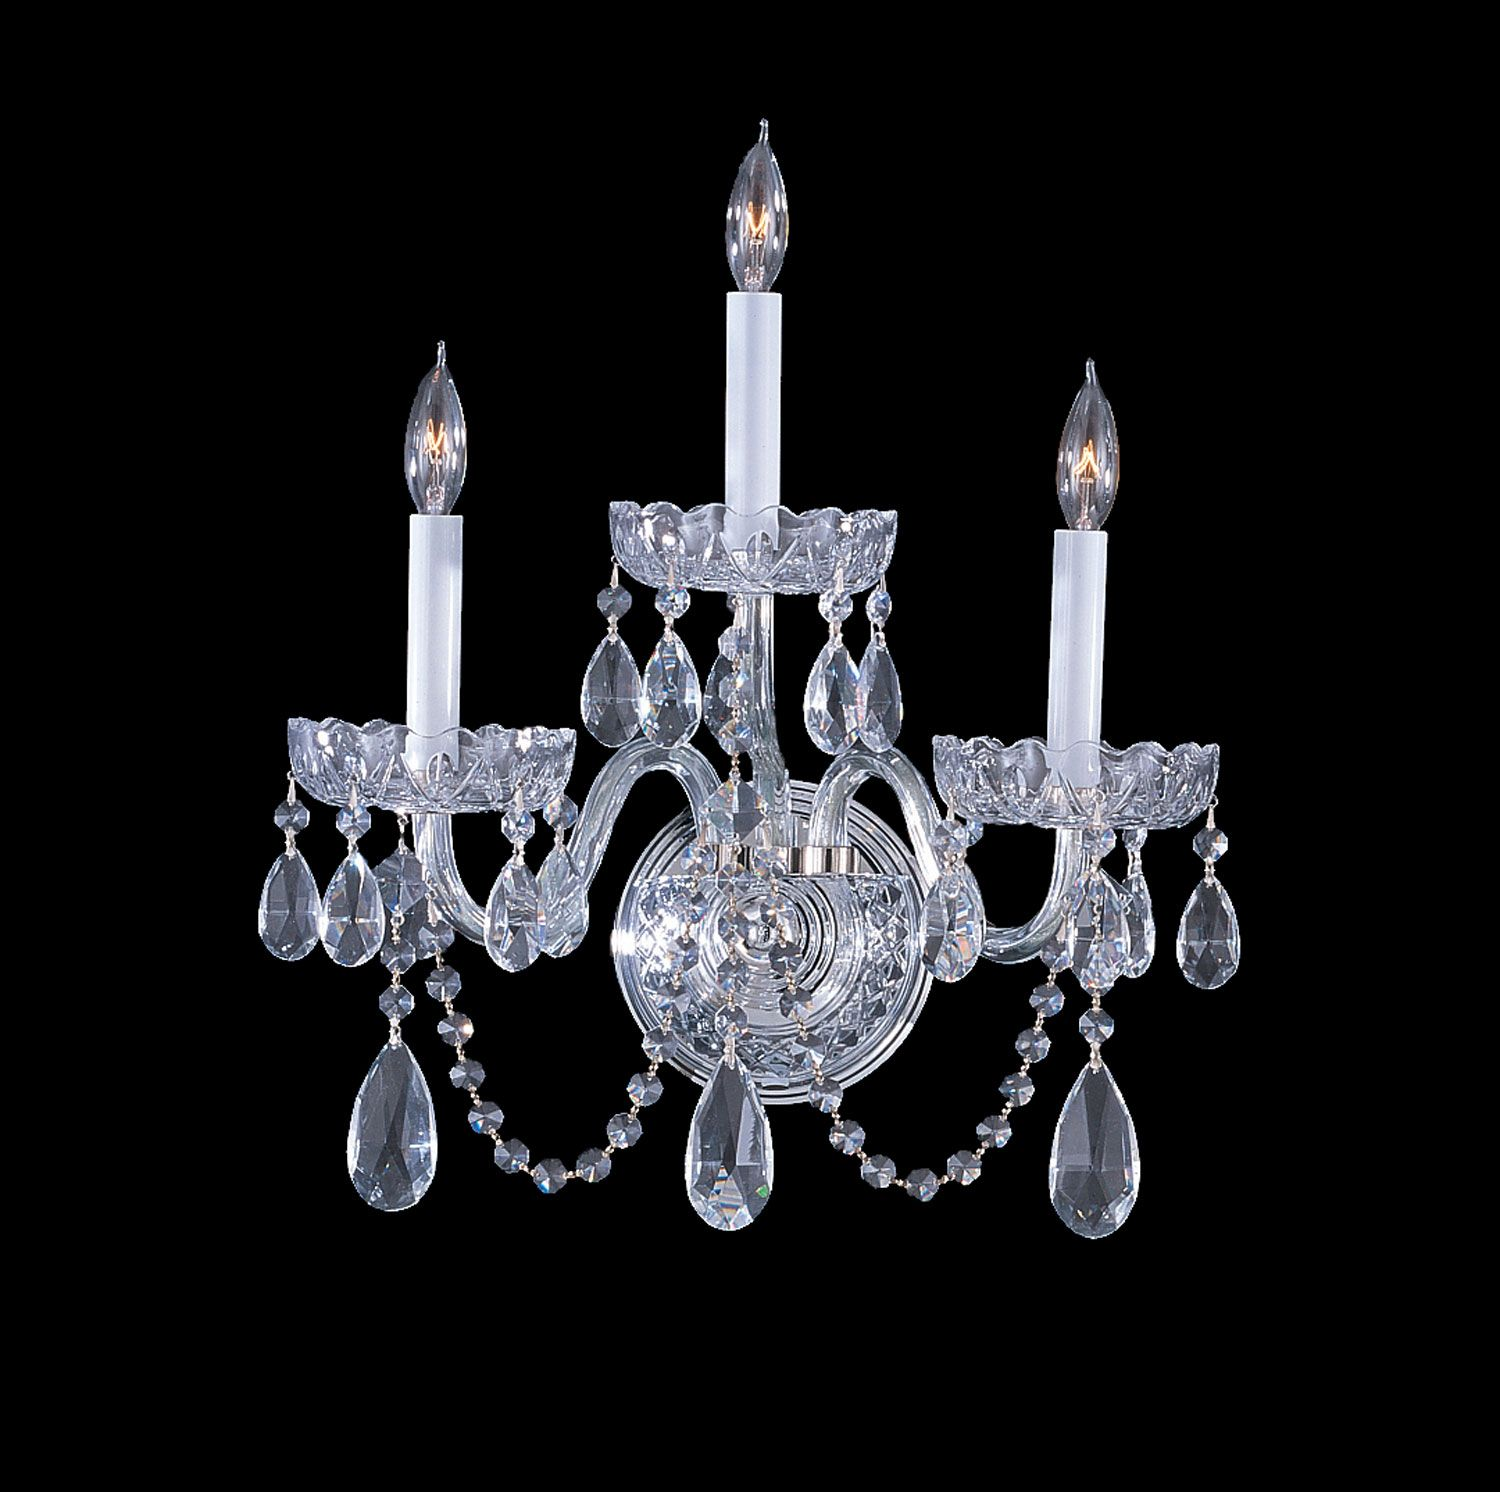 wrought sconces manor wall product by light english iron sconce crystal world glow old